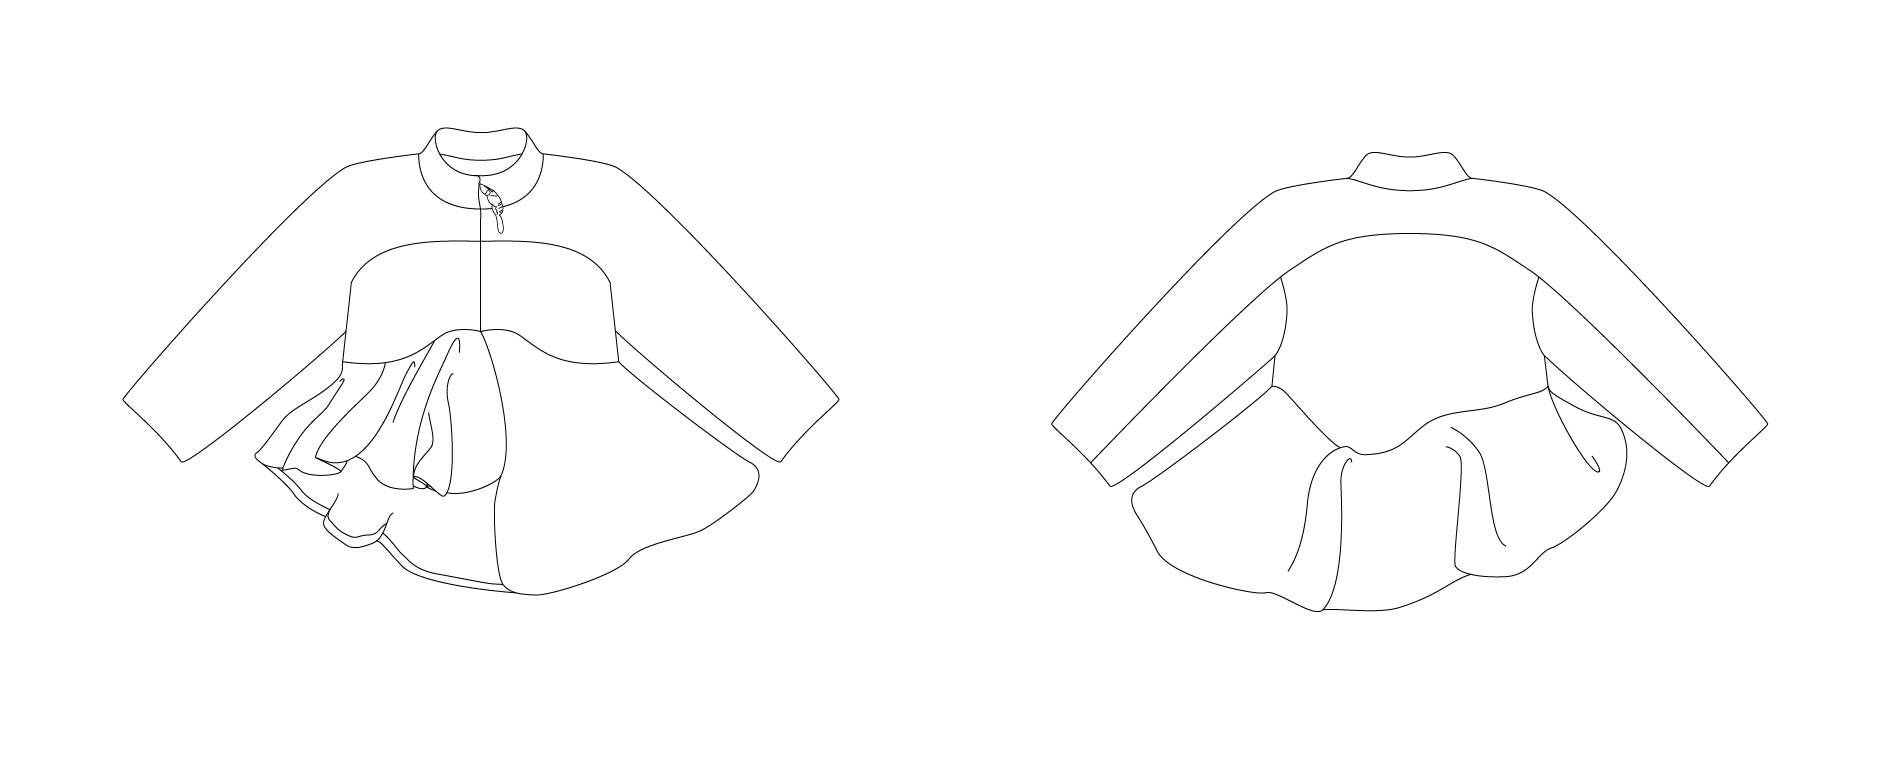 technical drawing for asymmetric faux fur jacket #graduatecollection #fashiondesign #fashiondesignstudent